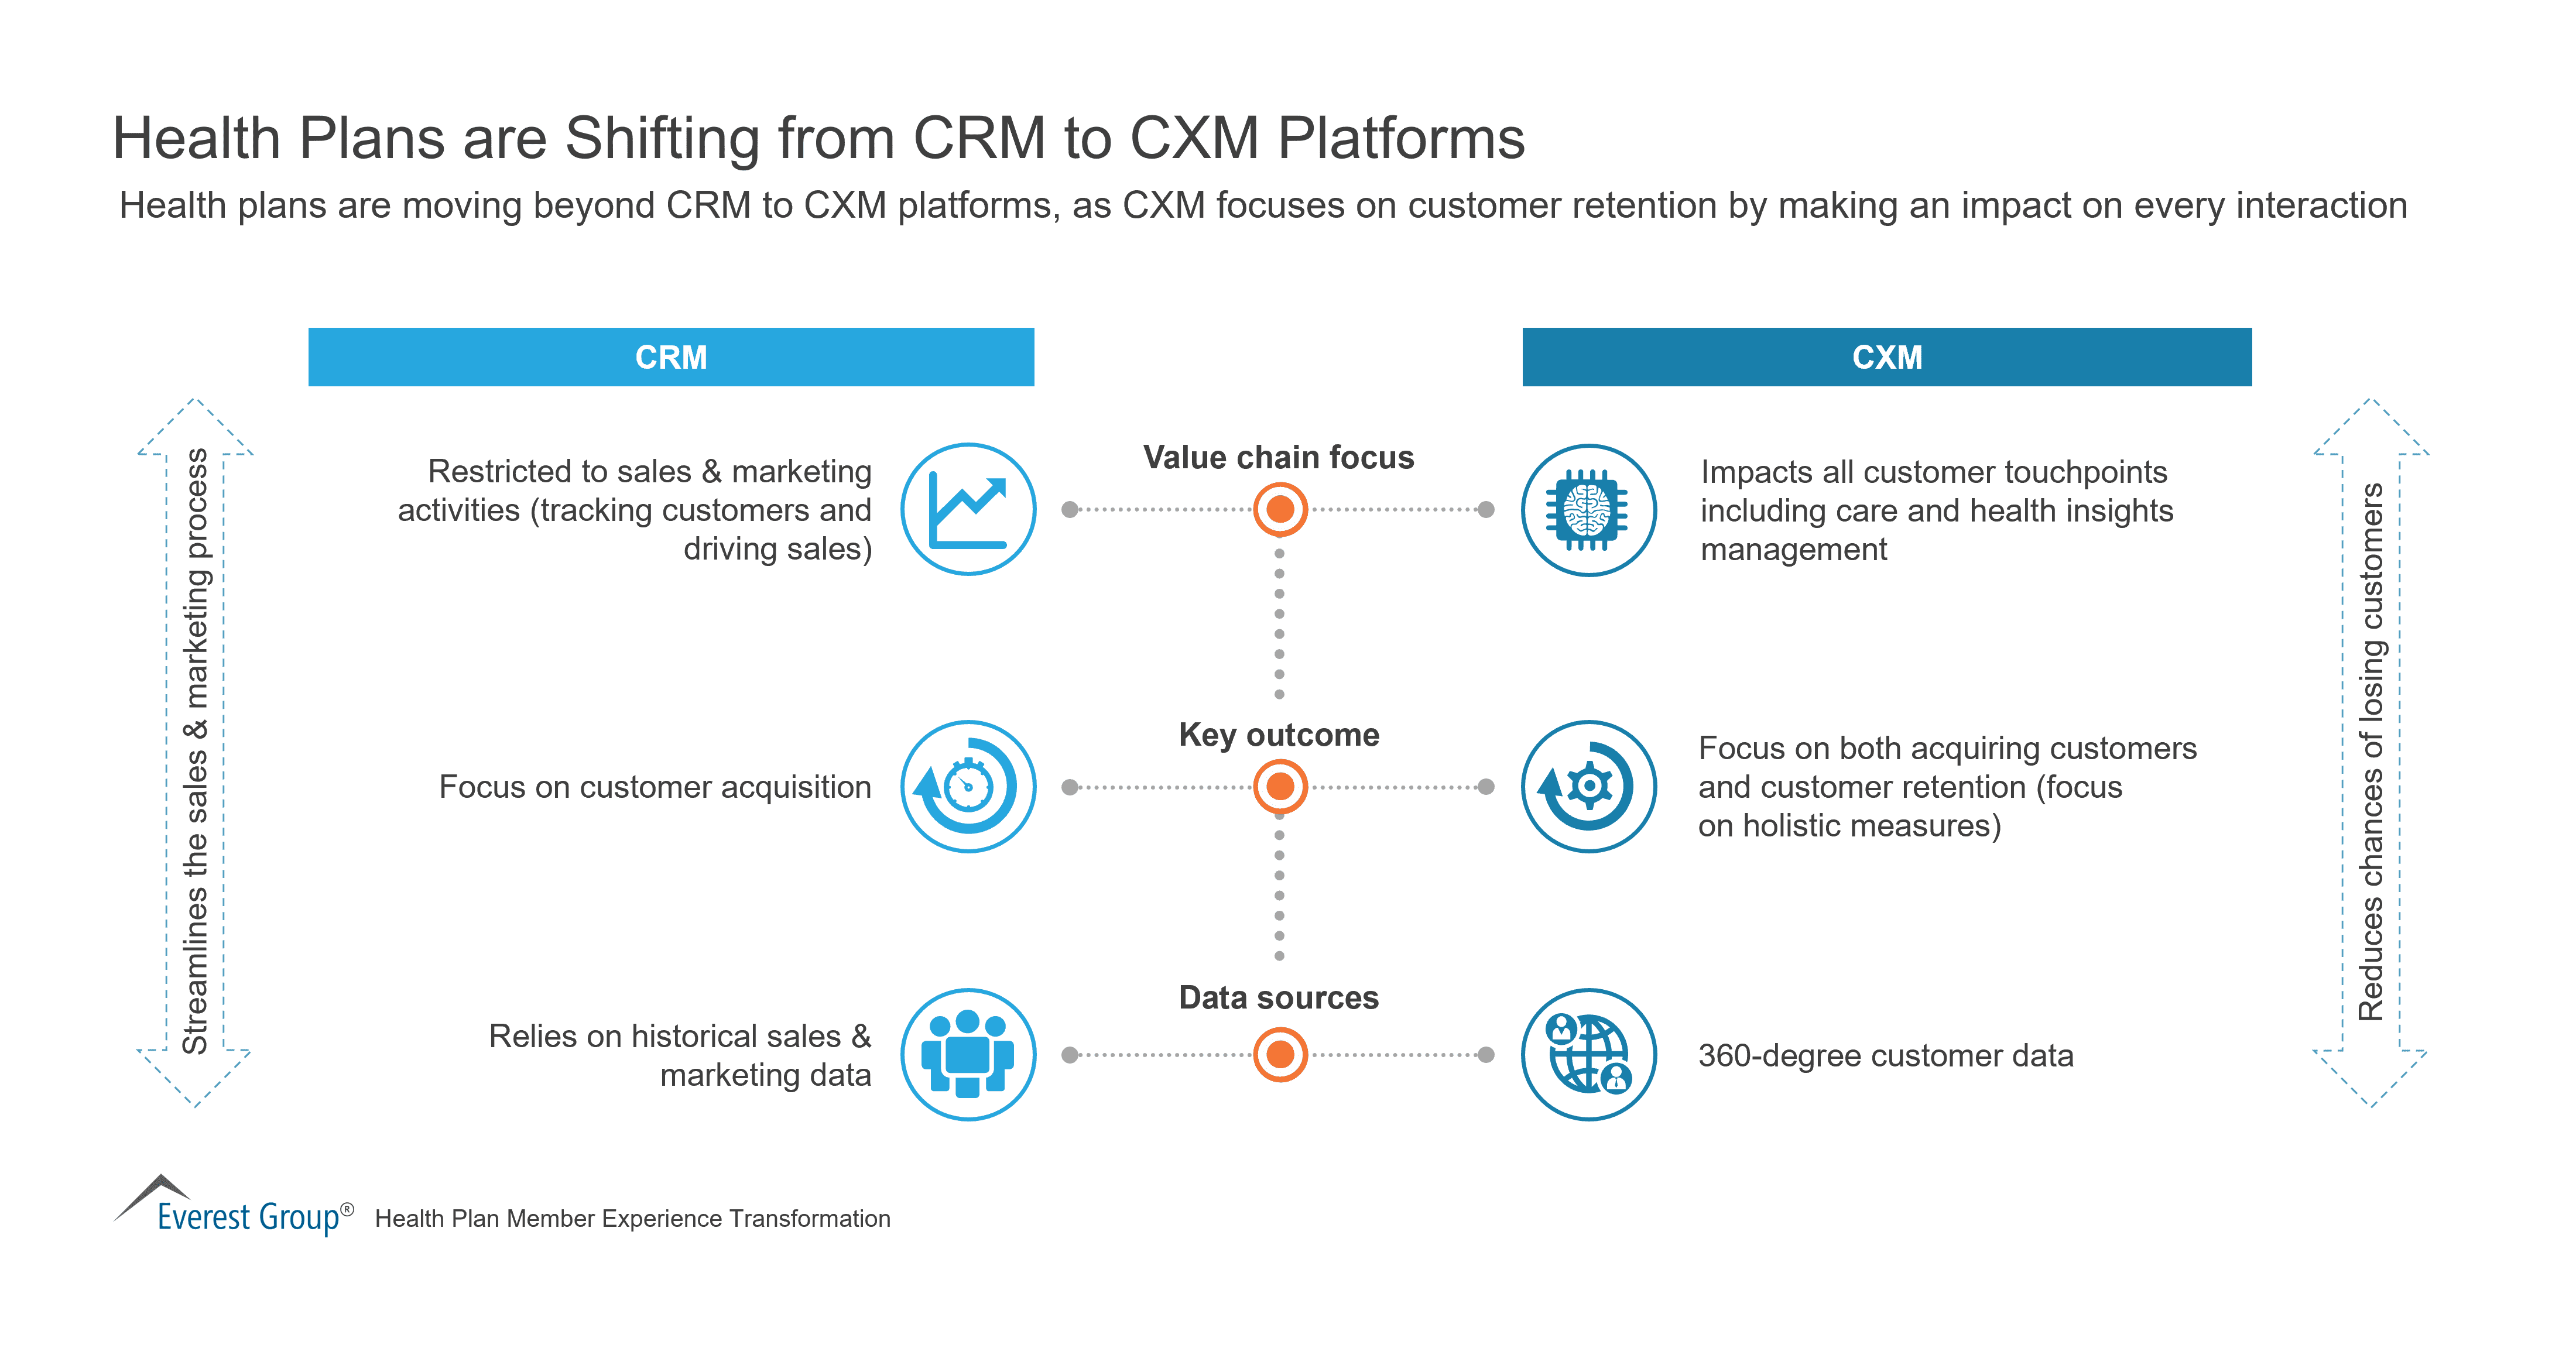 Health Plans are Shifting from CRM to CXM Platforms